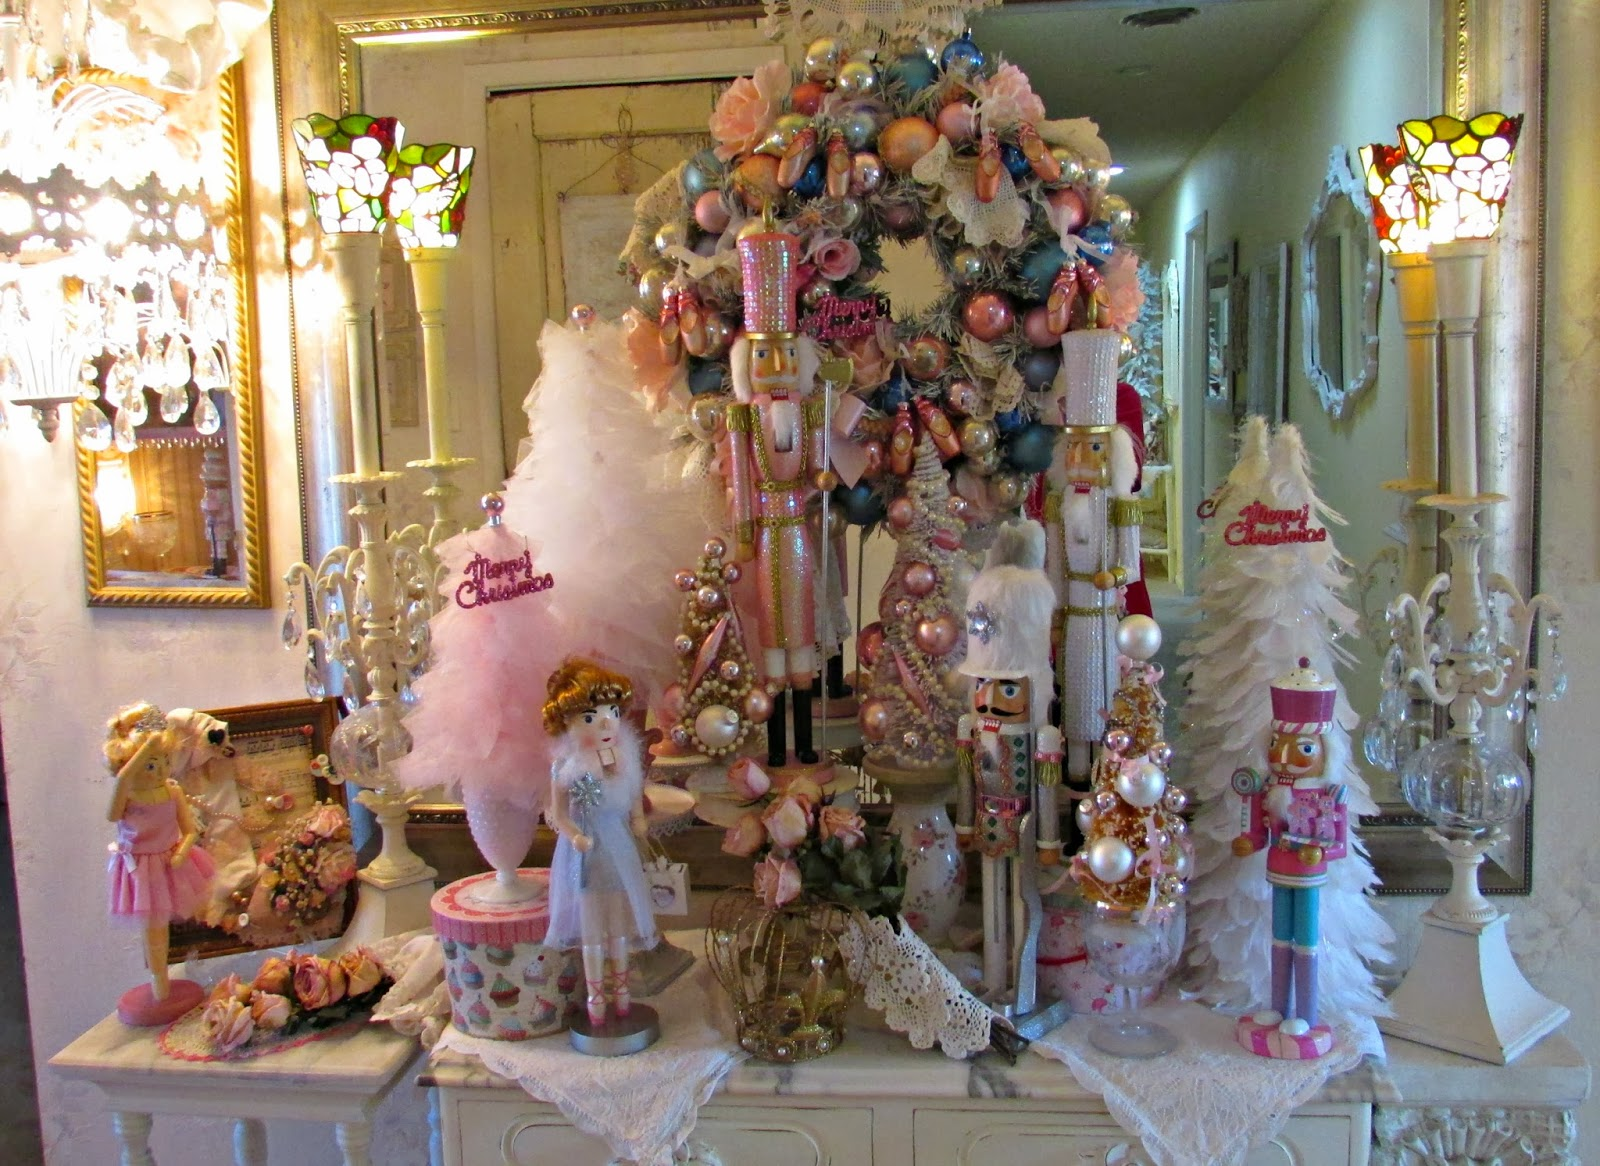 Penny's Vintage Home: Candy Land Christmas Tree